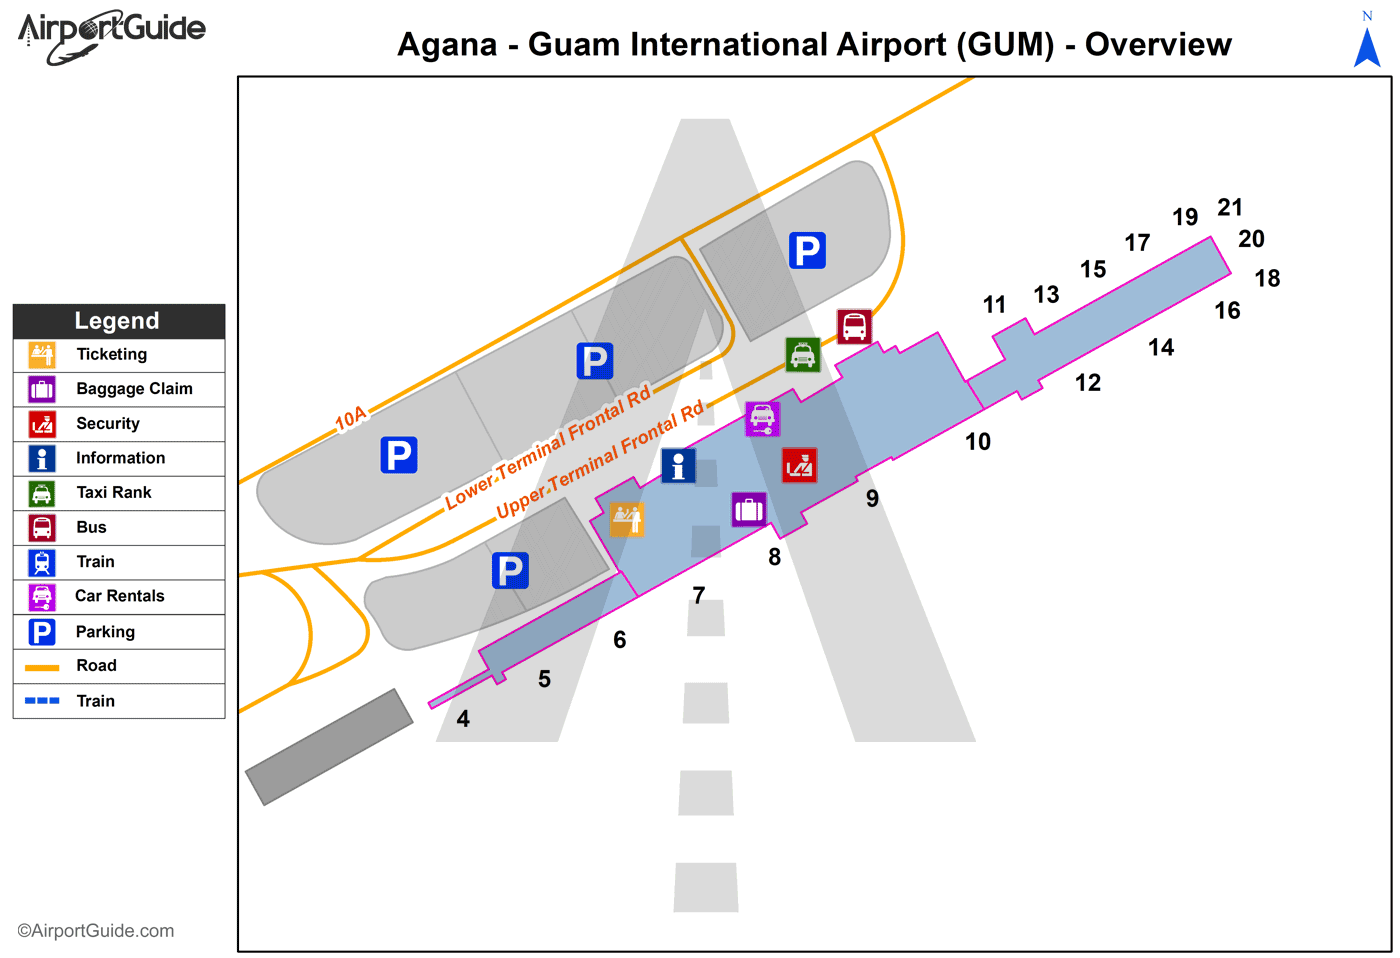 Agana - Guam International (GUM) Airport Terminal Map - Overview